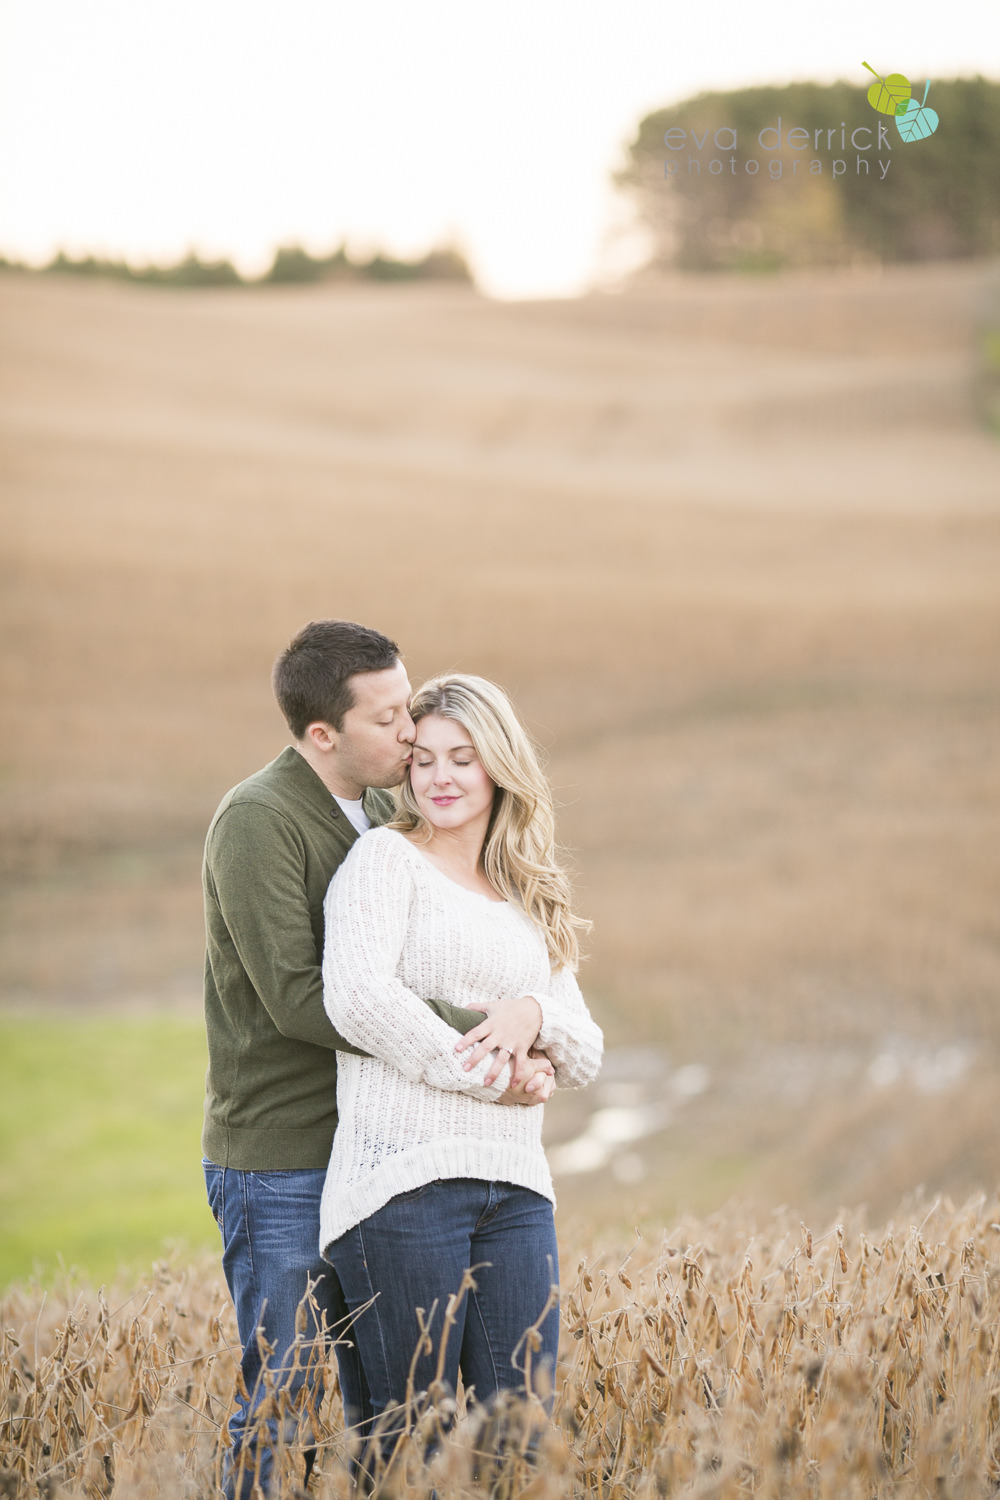 Albion-Hills-Photographer-Engagement-Session-Alanna-Matt-photography-by-Eva-Derrick-Photography-026.JPG